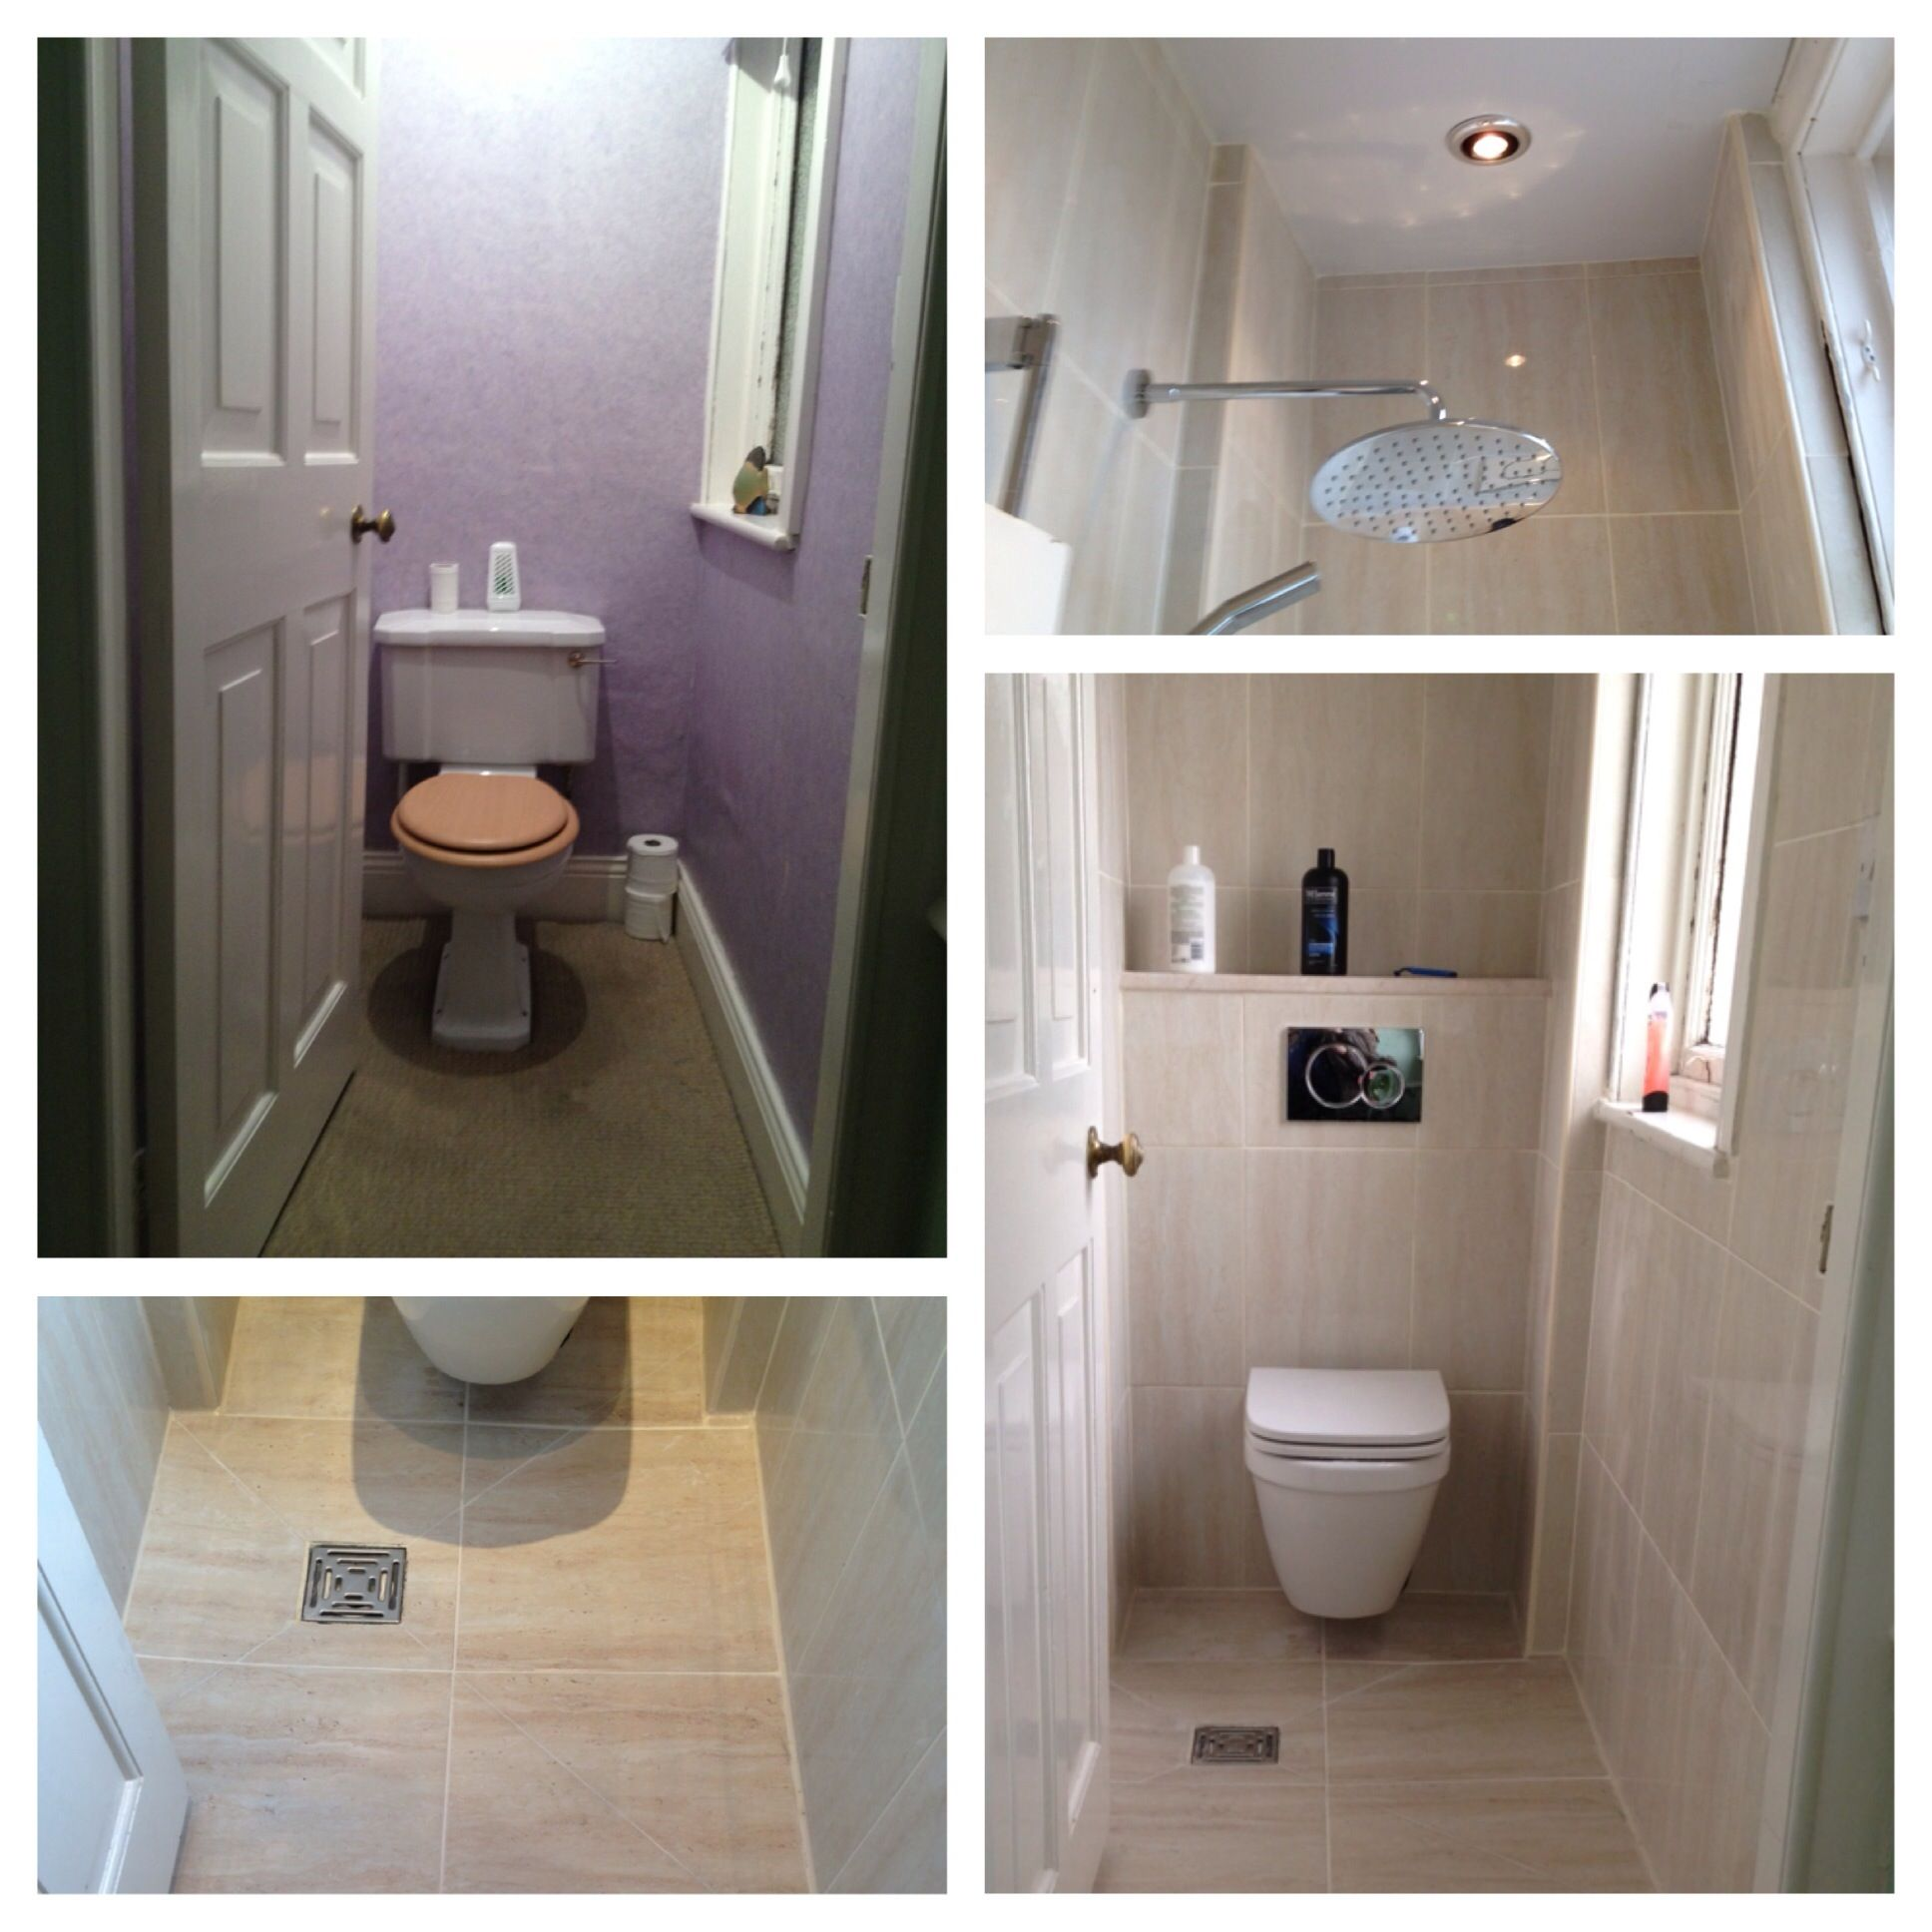 Small Bathroom Design Under Stairs: Wc Room Transformed To Wetroom With The Addition Of A Drop